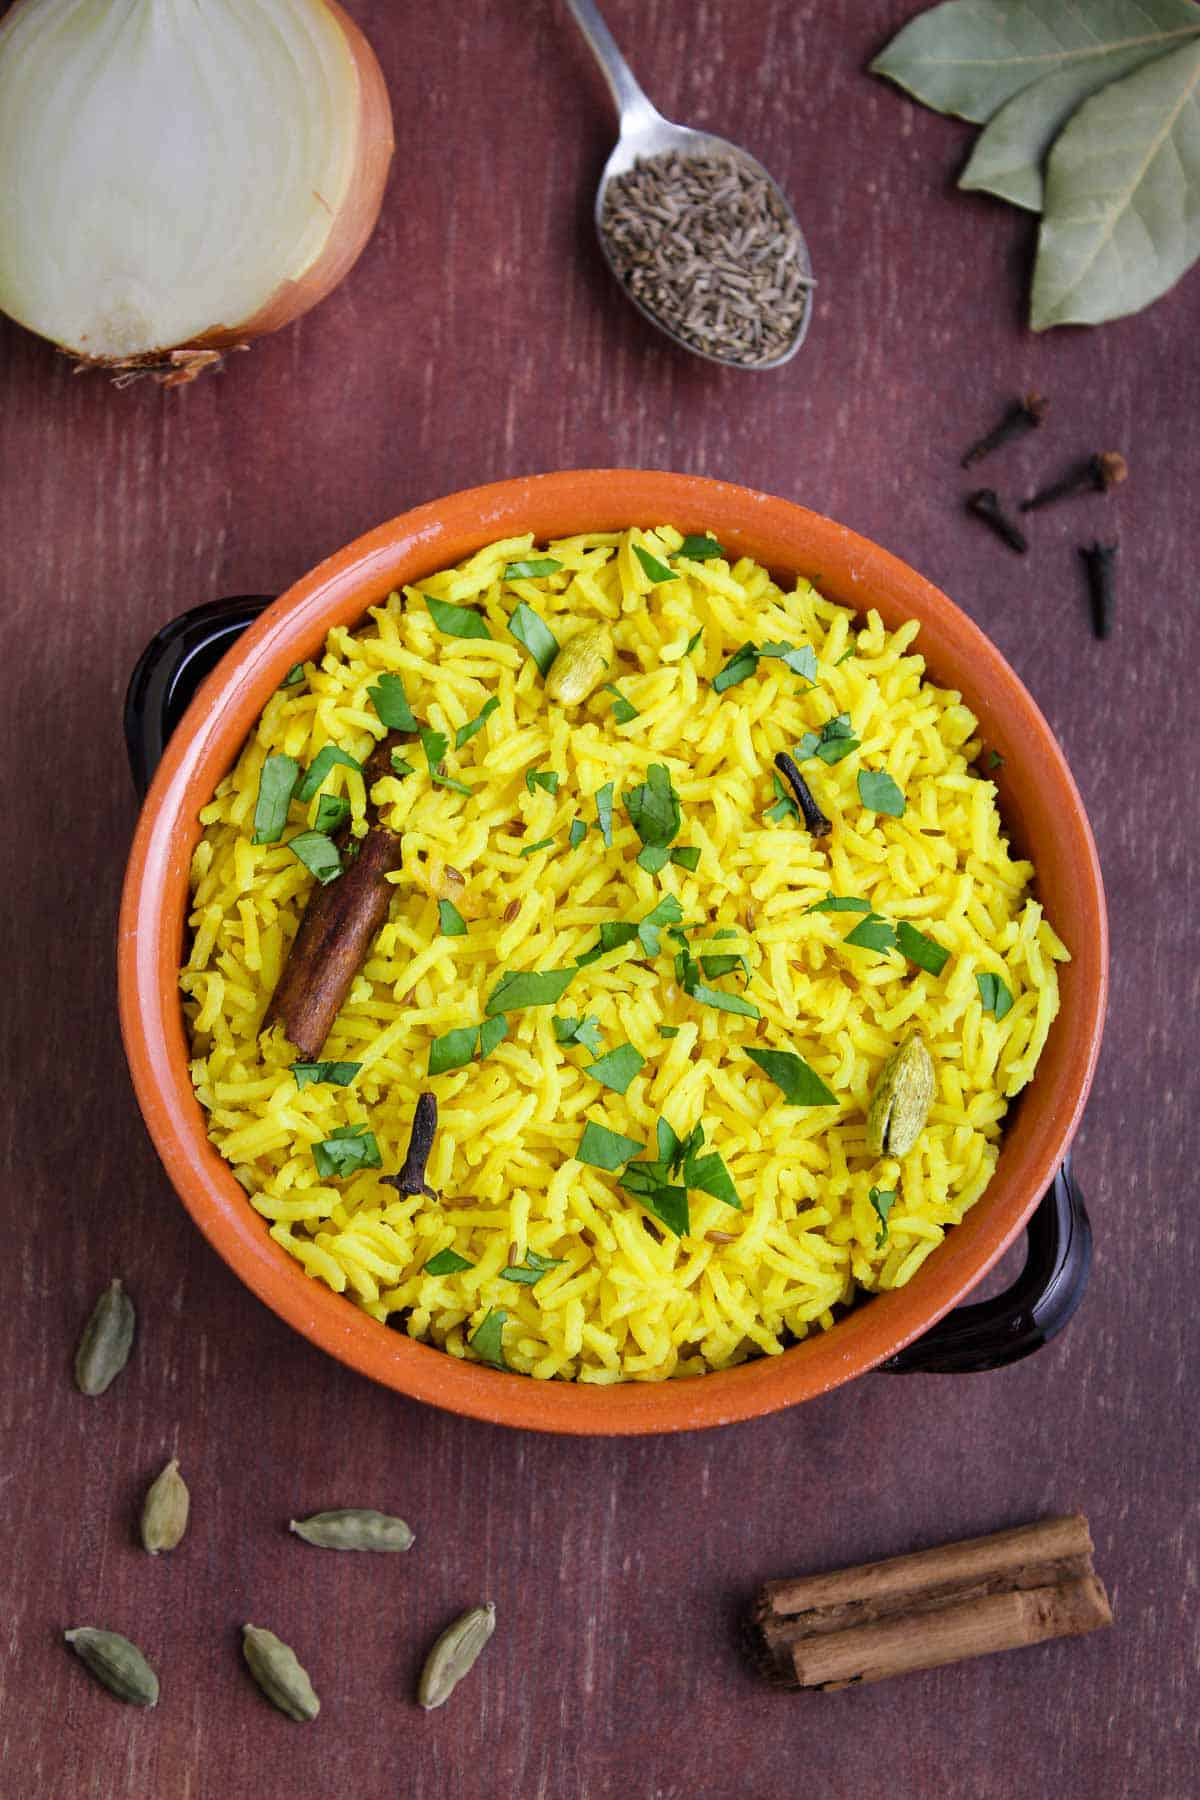 Pilau Rice in Bowl with Spices